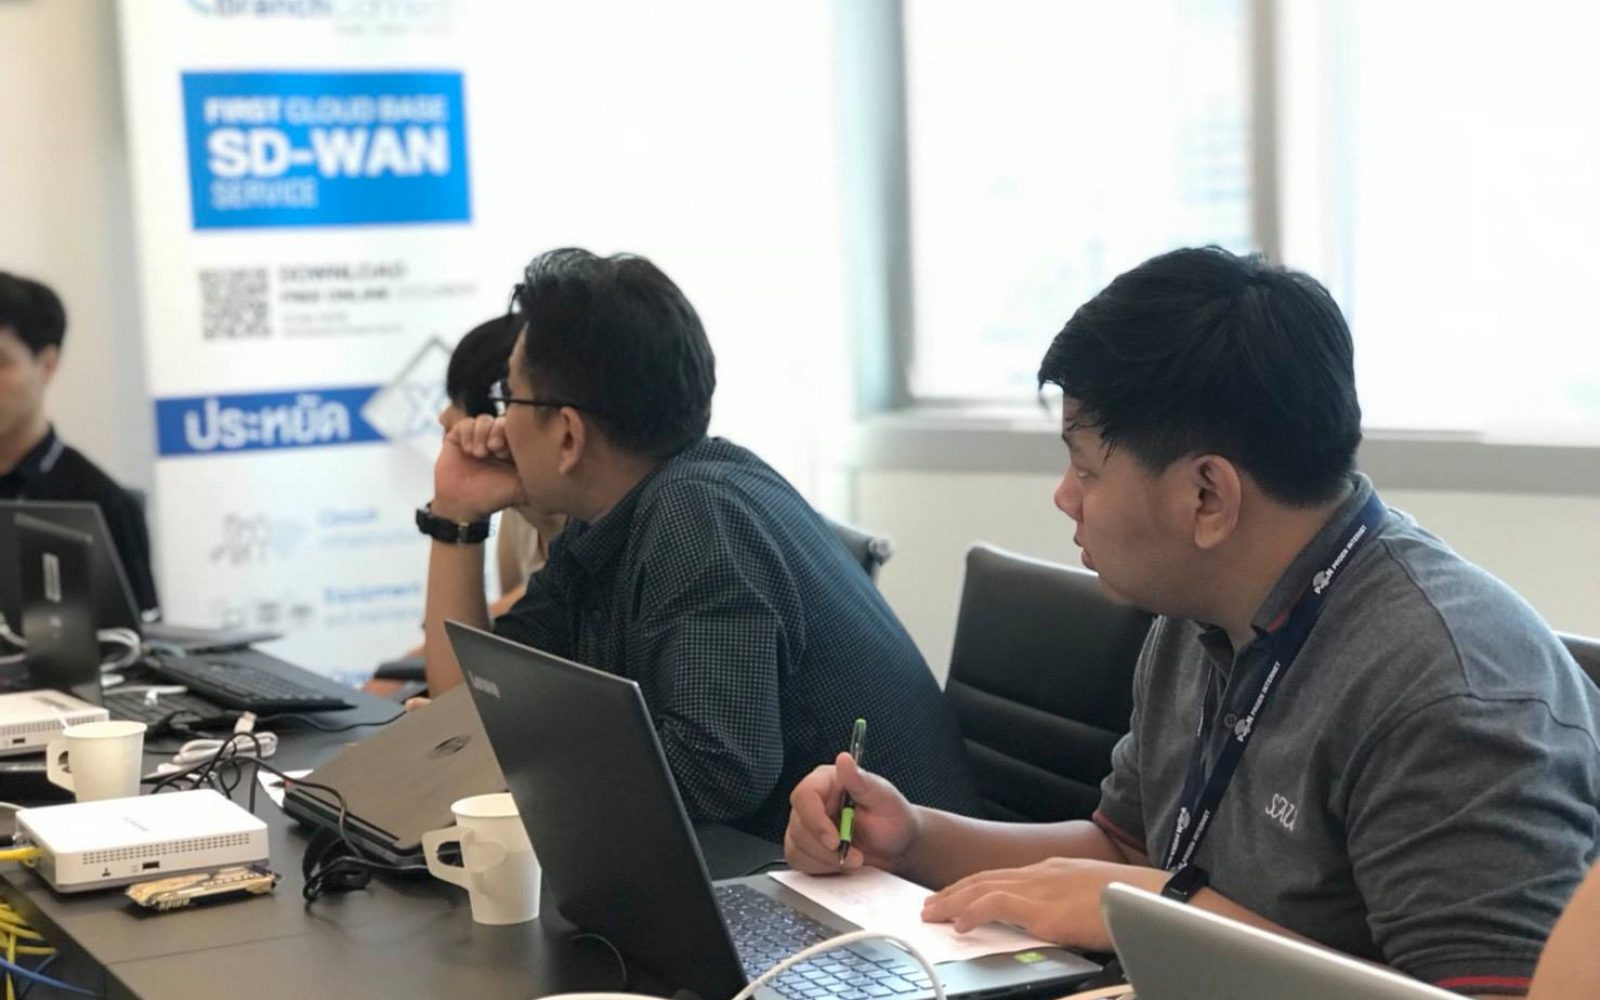 sd-wan workshop5